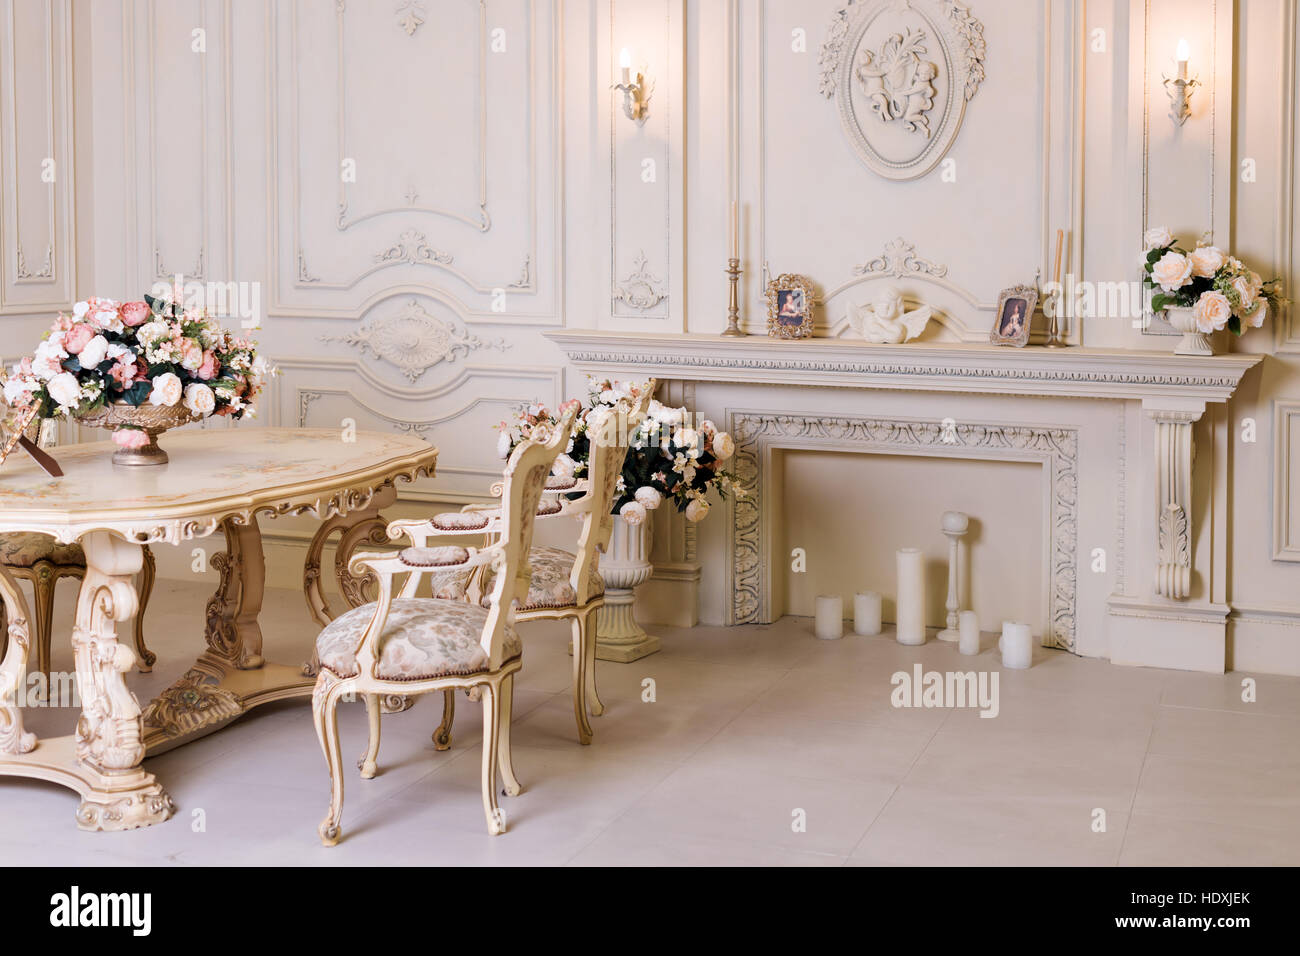 Luxury Apartment Comfortable Classic Living Room Luxurious Vintage Interior With Fireplace In The Aristocratic Style